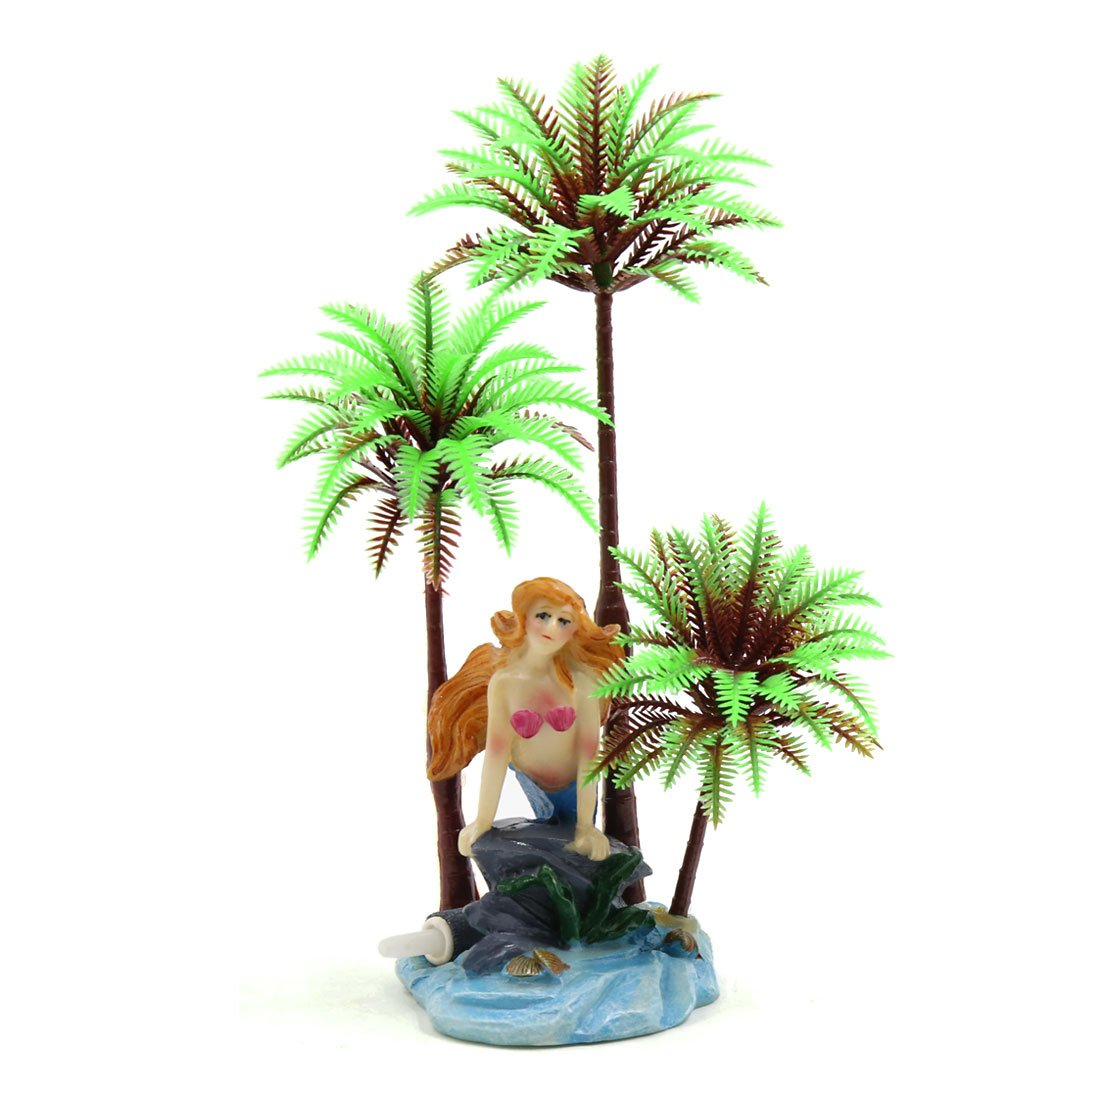 Type 2 uxcell® Plastic Coconut Tree Aquarium Terrarium Landscape Decorative Plant for Reptiles and Amphibians